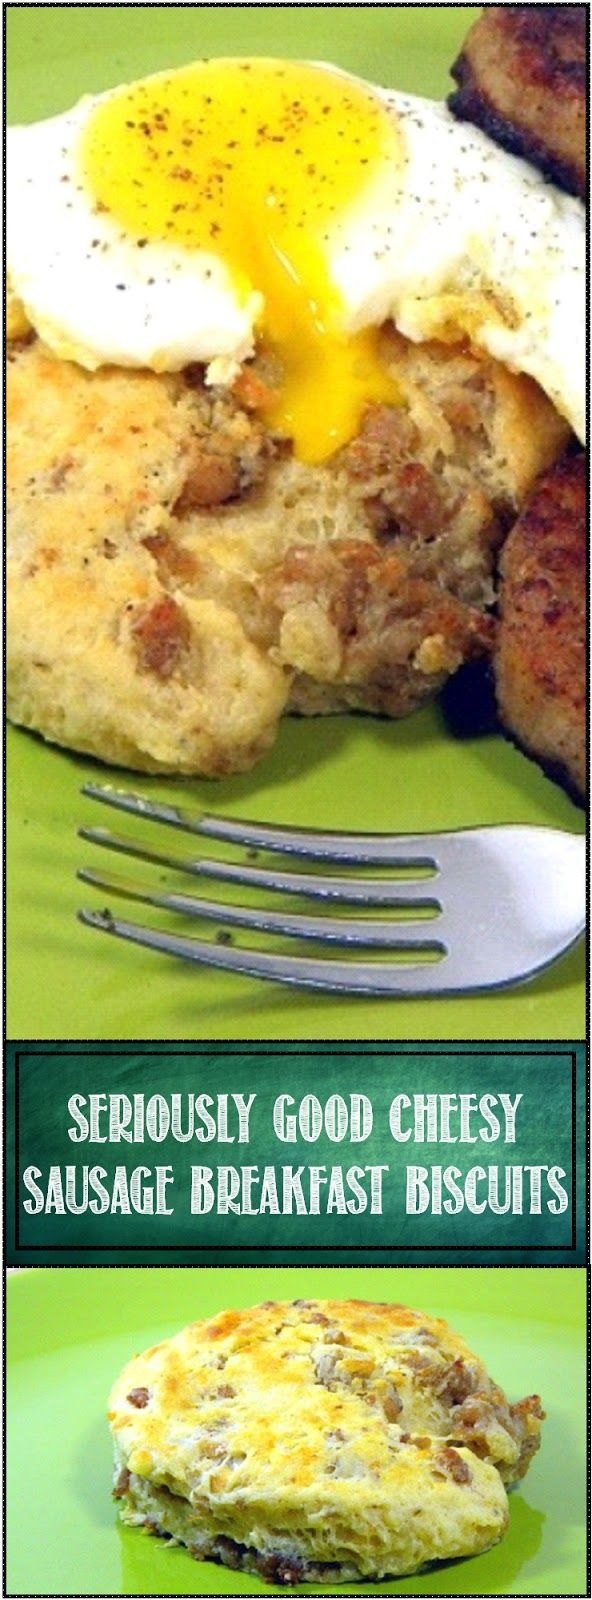 Inspired By eRecipeCards: Seriously GOOD Cheesy Sausage Biscuits